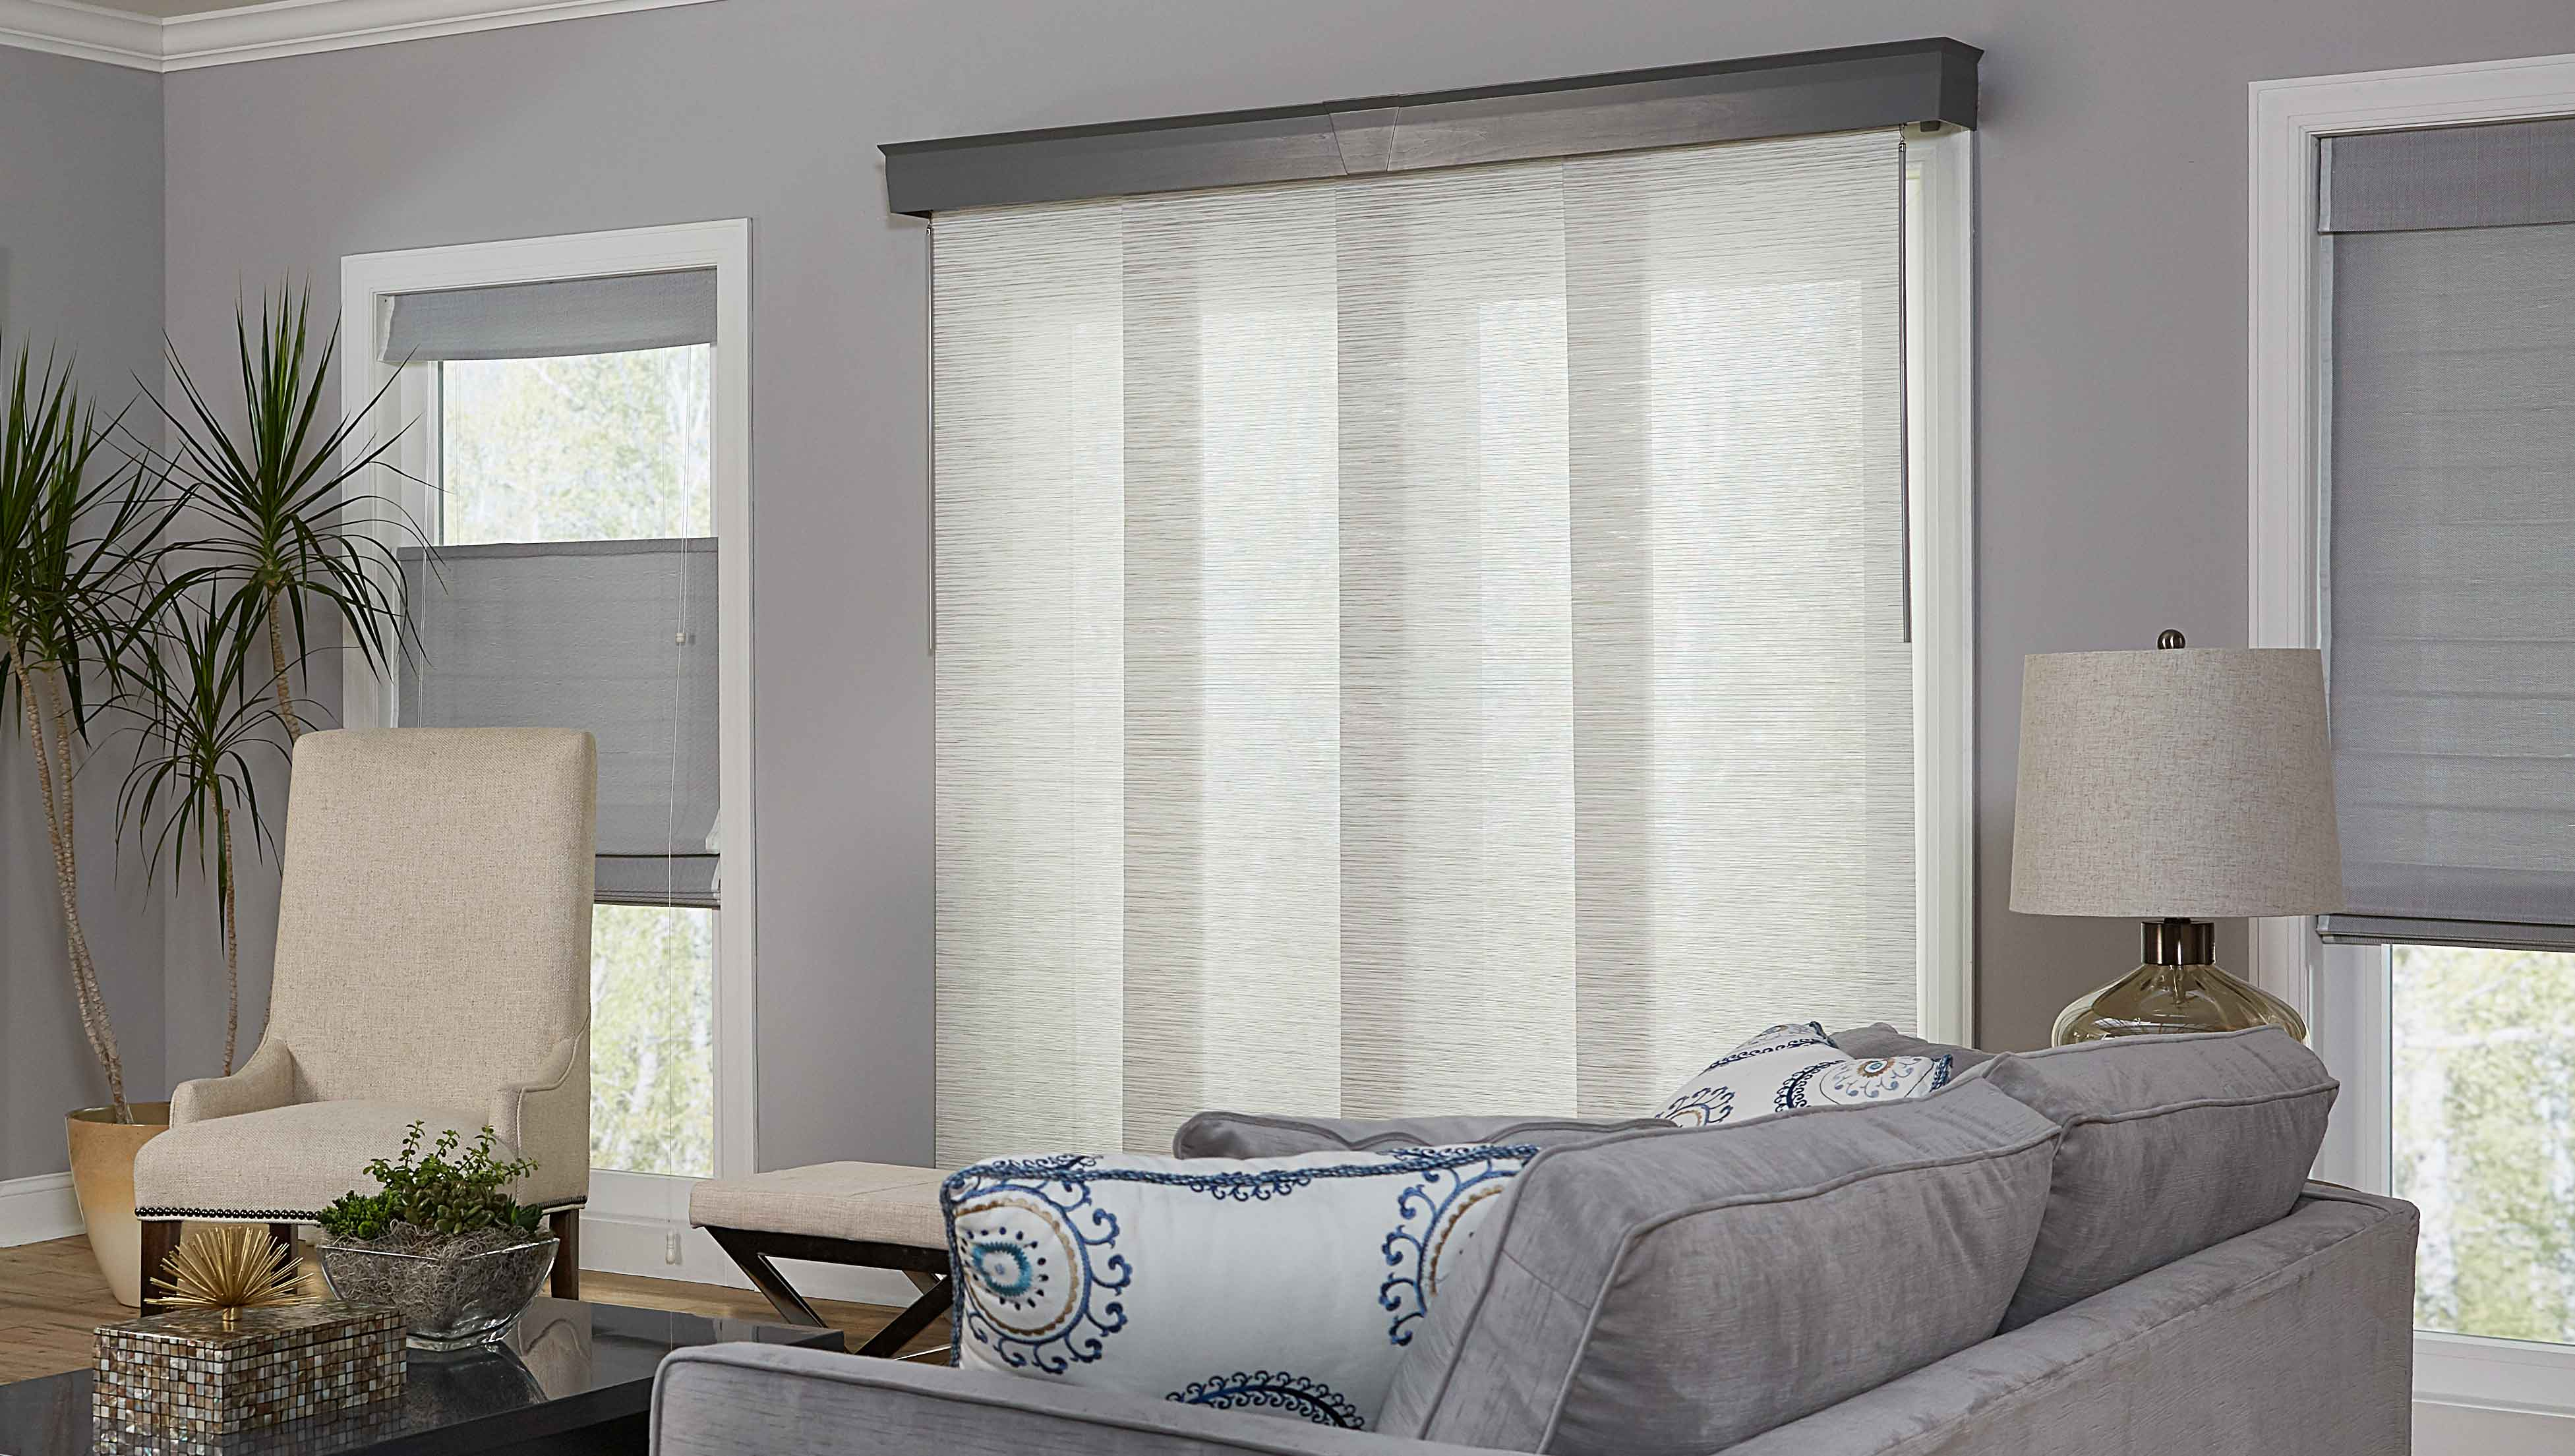 How to fix panel blinds